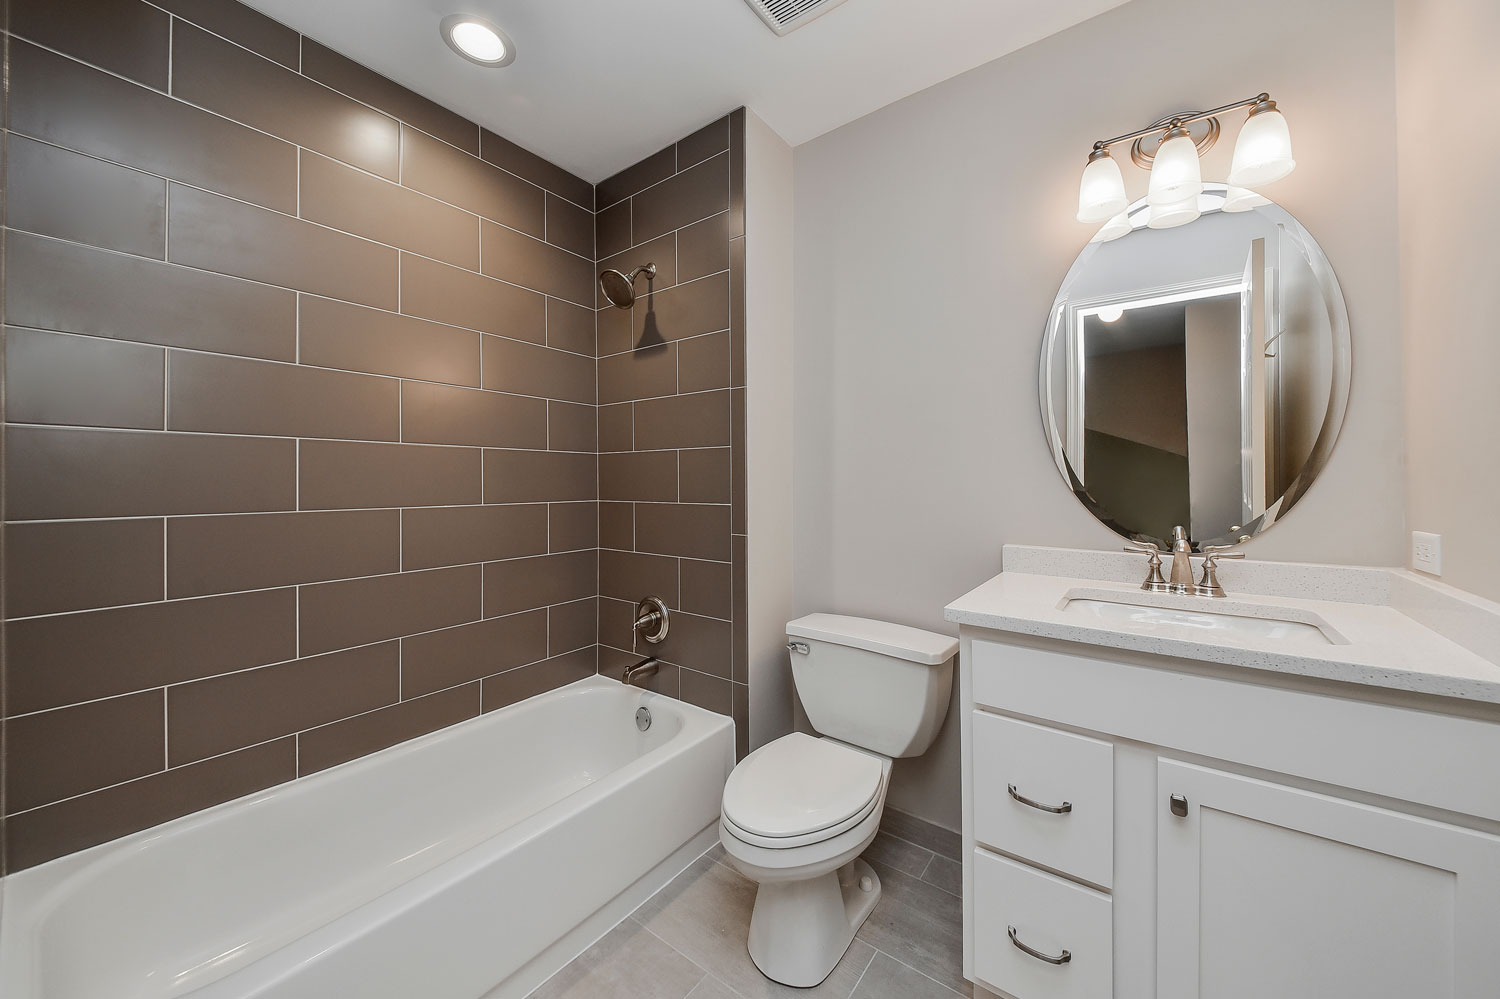 Charles cindy 39 s hall bathroom remodel pictures home for Bathroom contractors